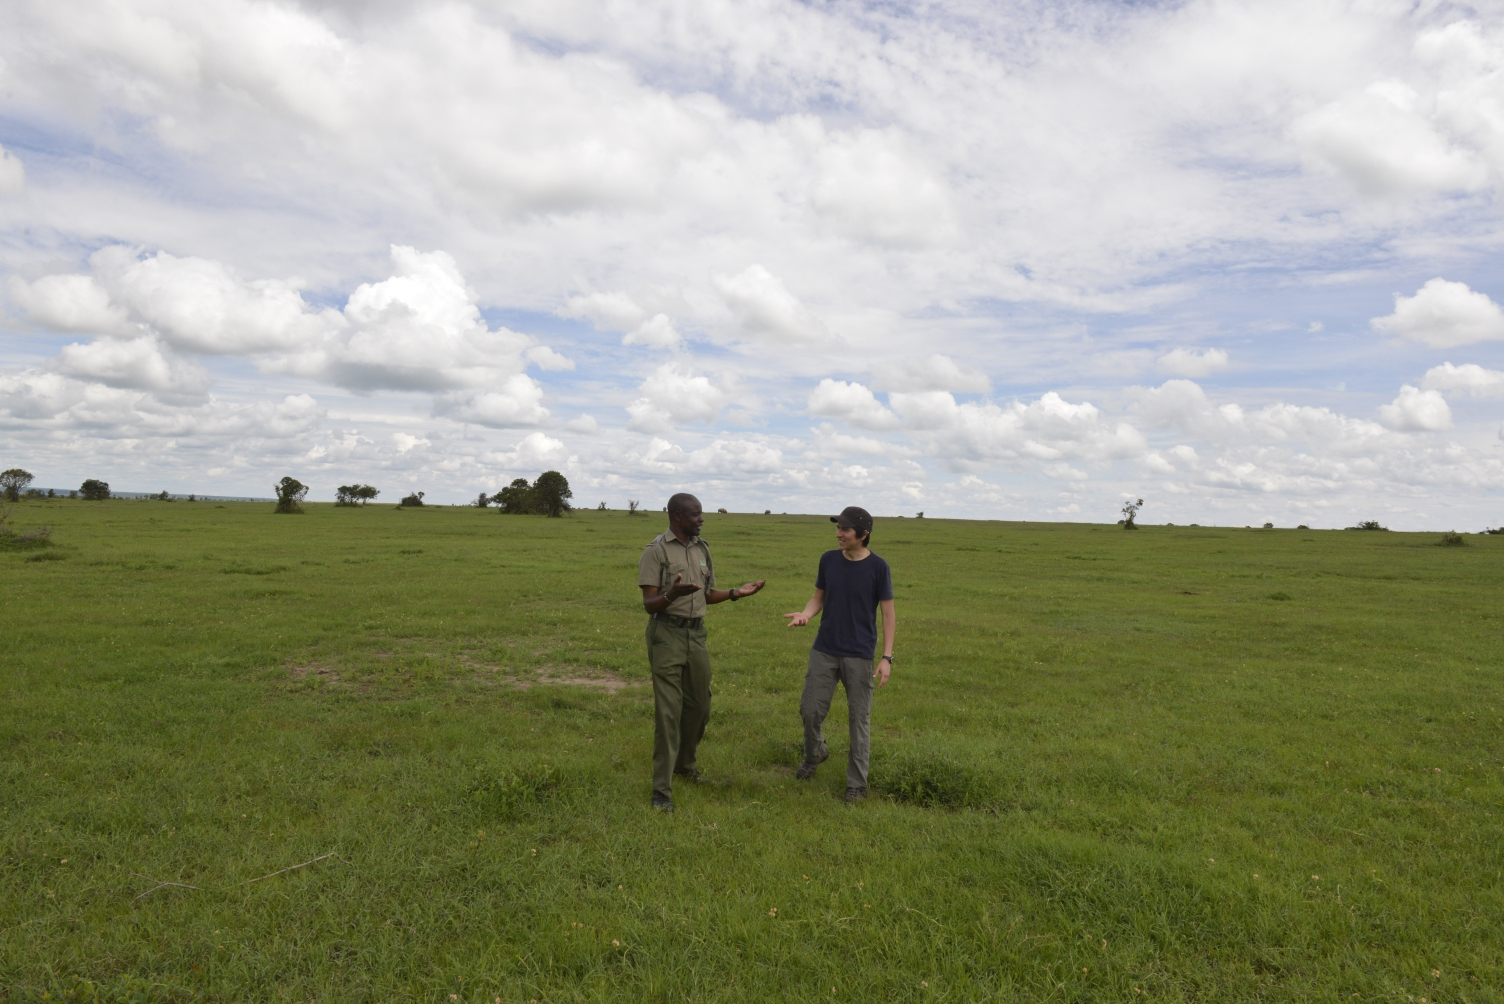 Out with the rhino patrol team, getting their perspective of life and work at Ol Pejeta